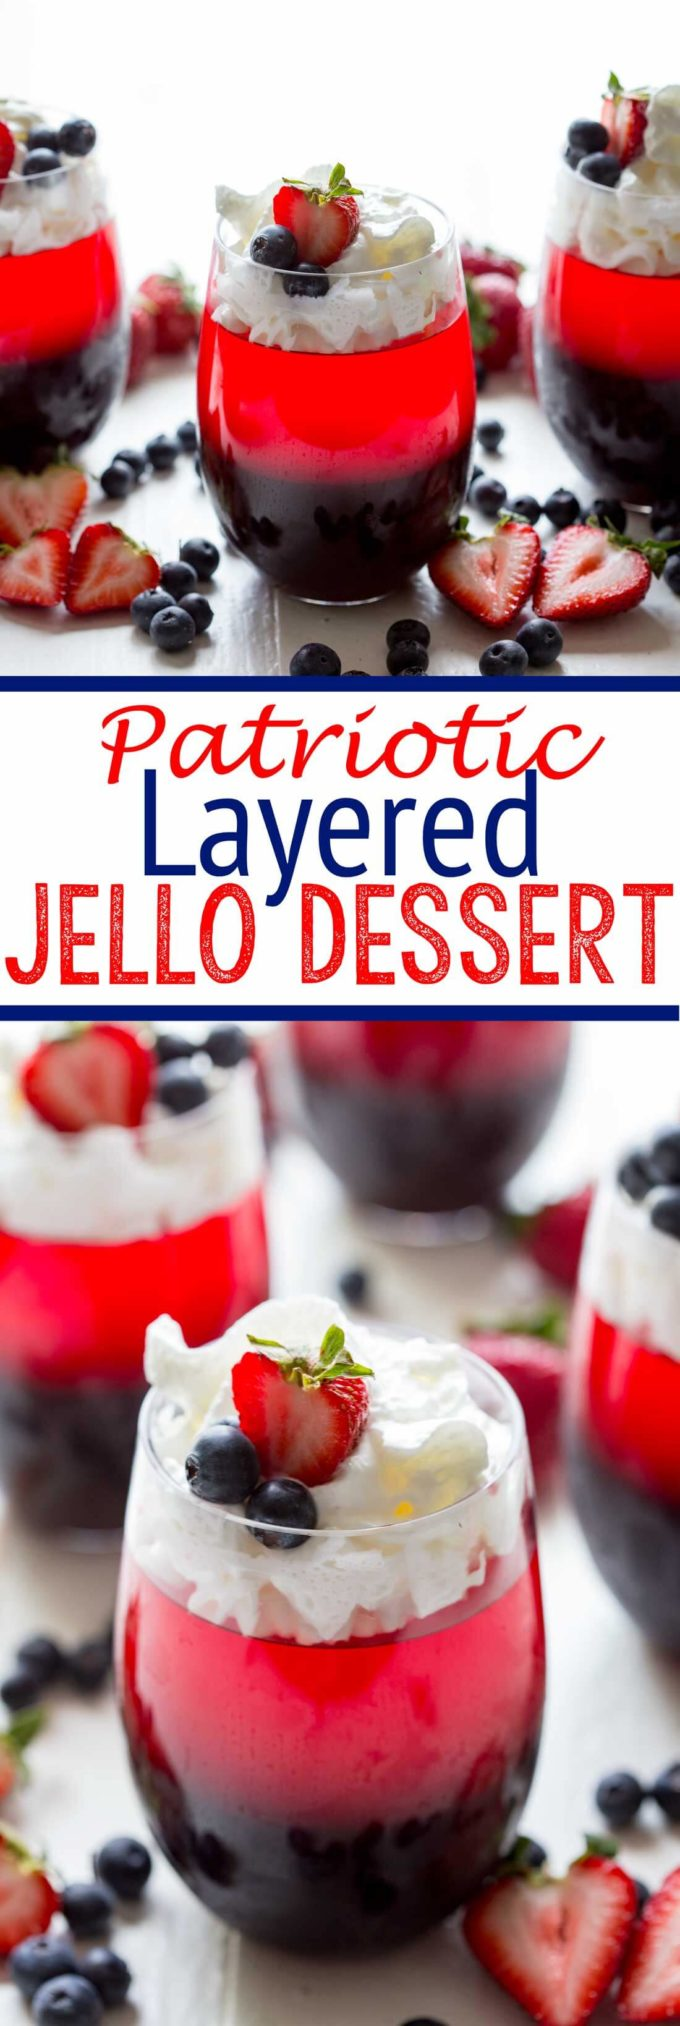 A layered patriotic jello dessert that is as tasty as it is easy to make!